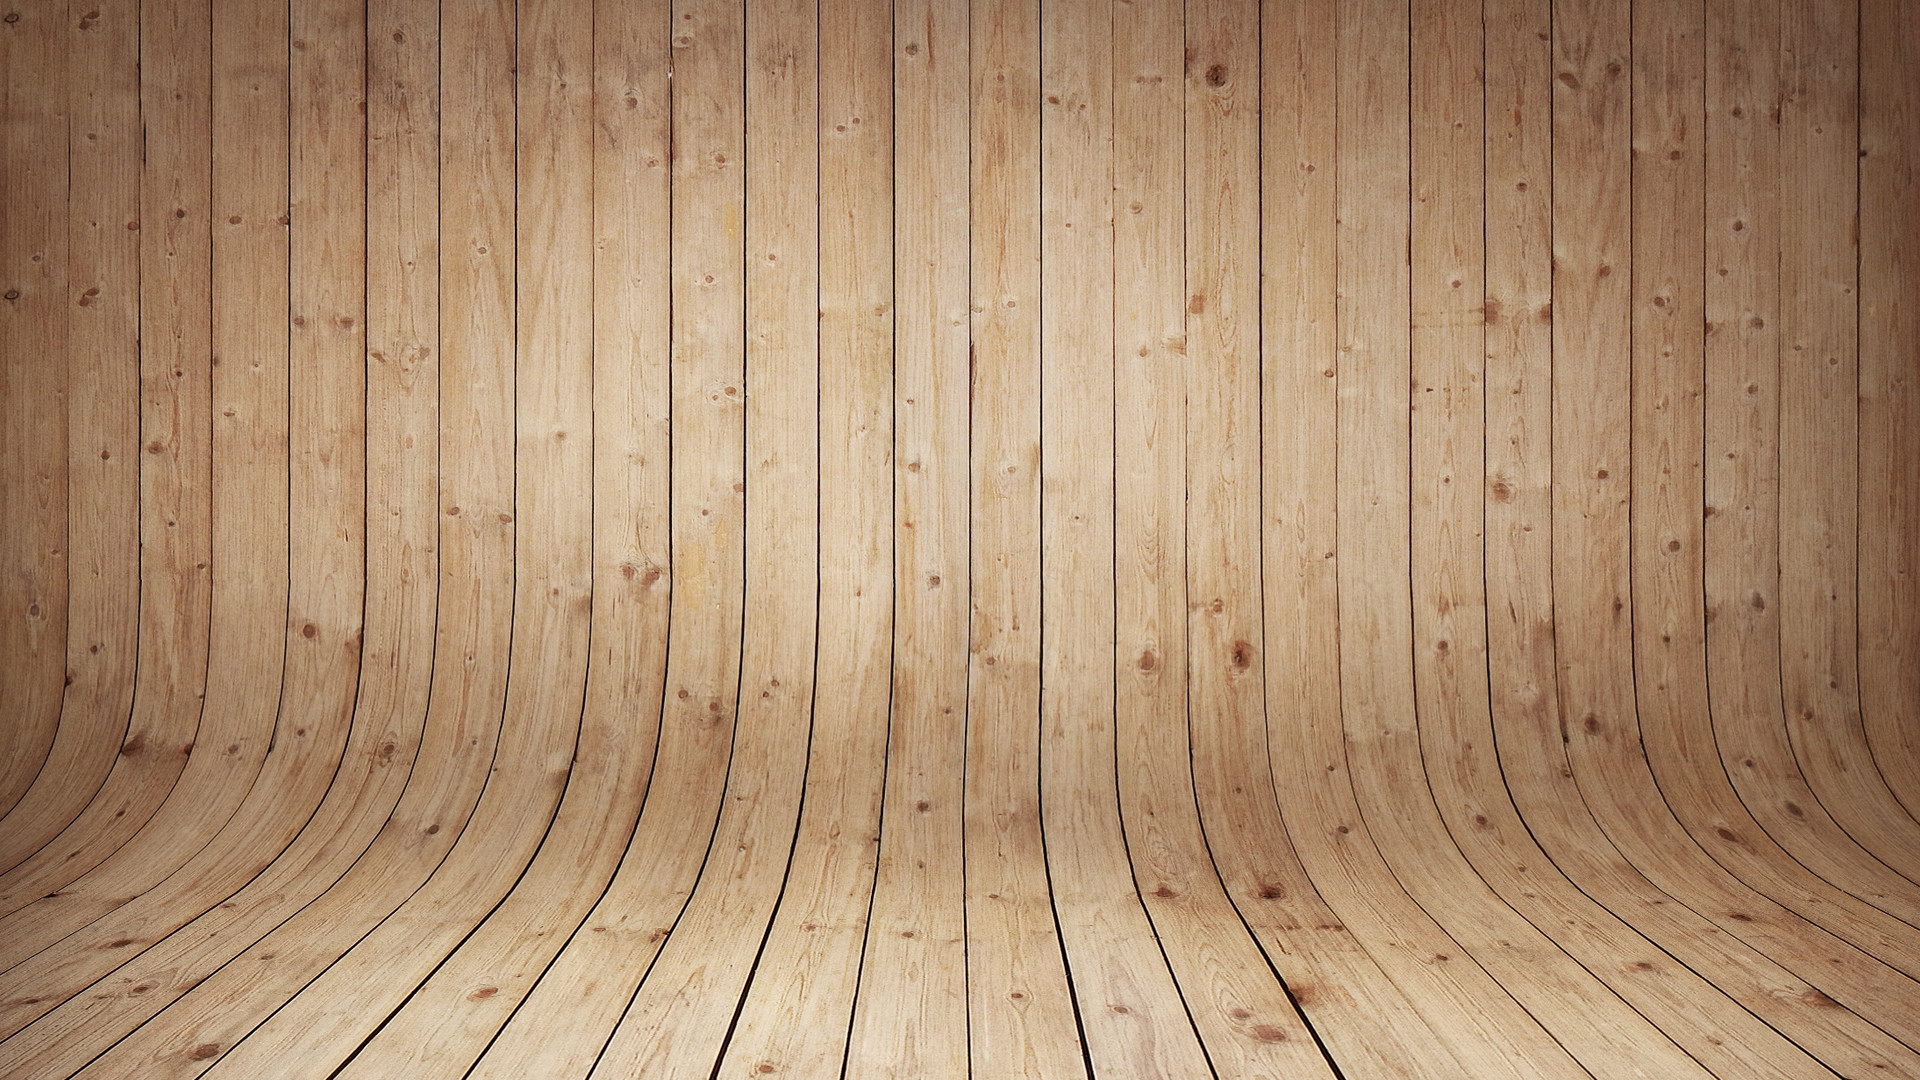 Fabulous Faux Wood Wallpaper With Faux Wood Wallpaper Wood Background Full Hd 1920x1080 Wallpaper Teahub Io